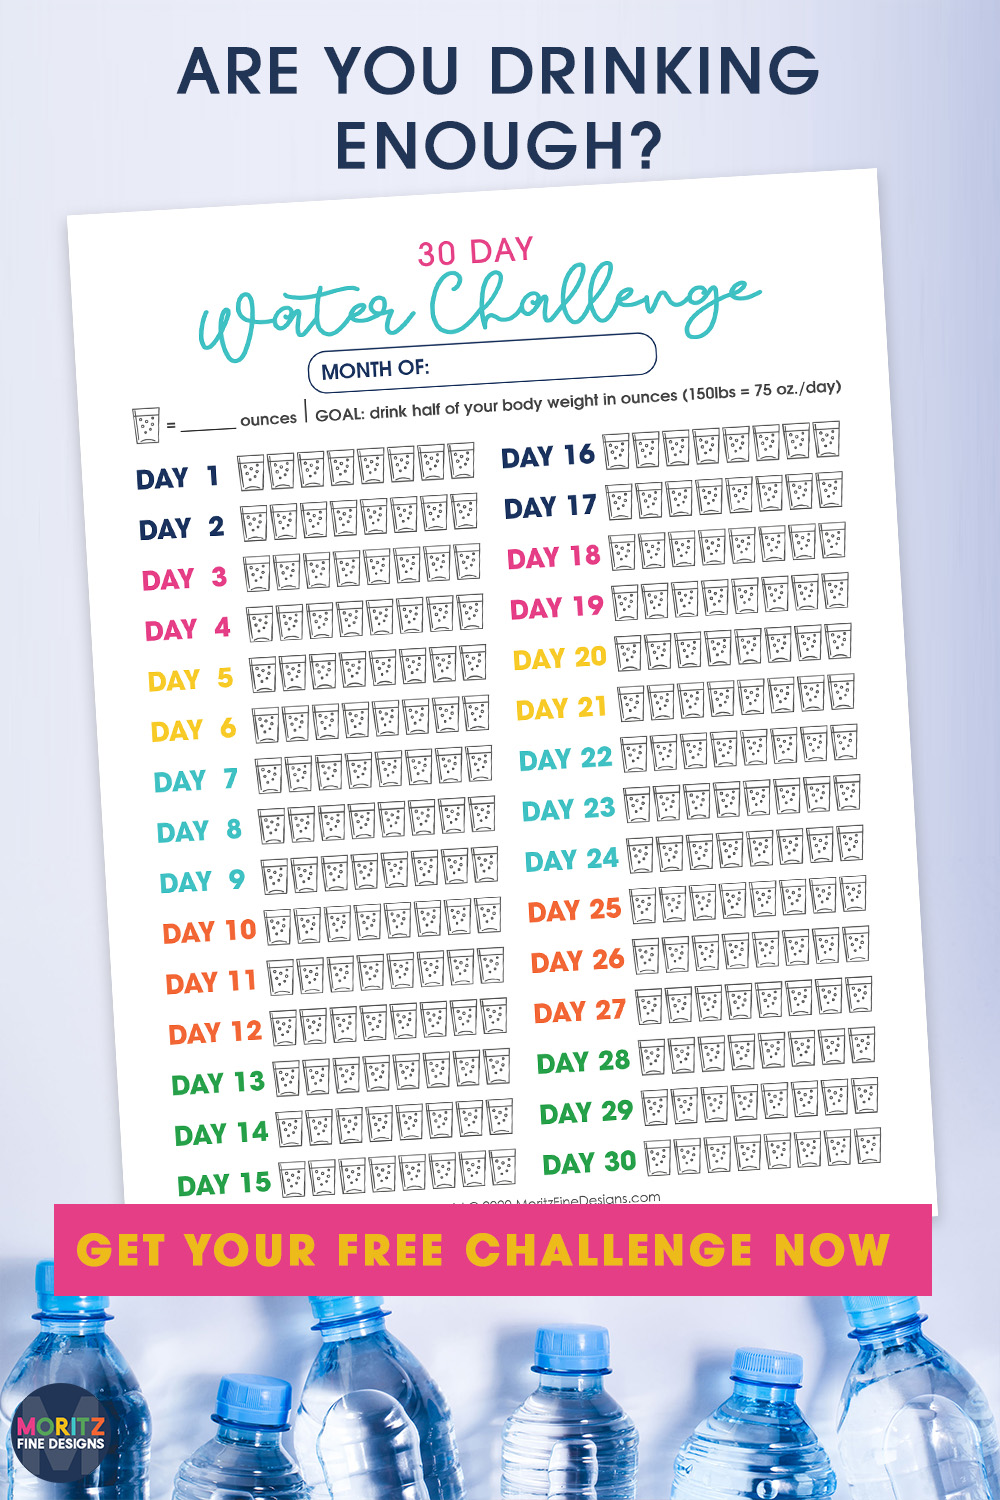 Make sure you are drinking enough water every day! Use the free printable Water Tracker and 30 Day Challenge to get started now!